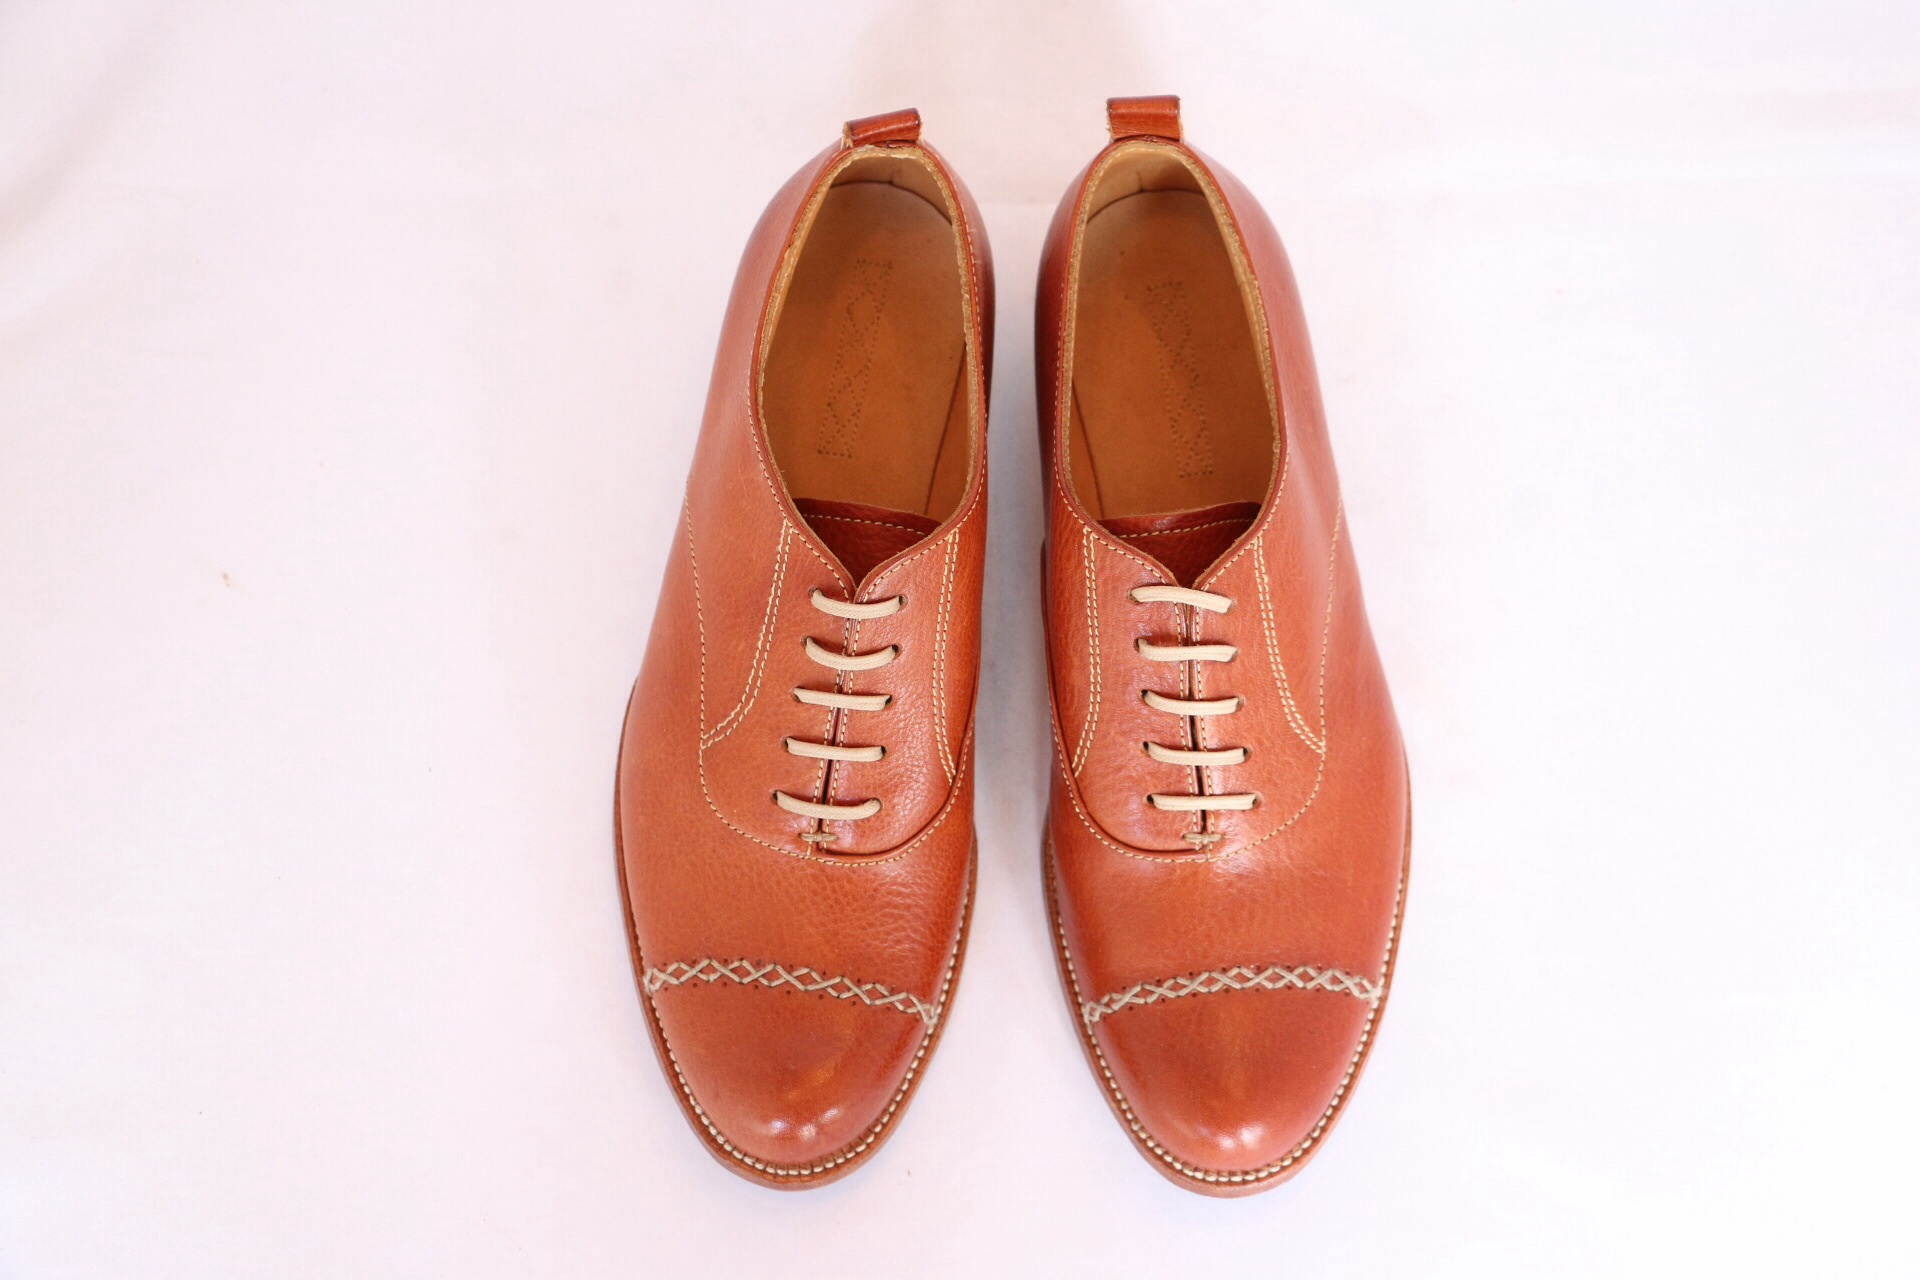 ladies balmoral shoes